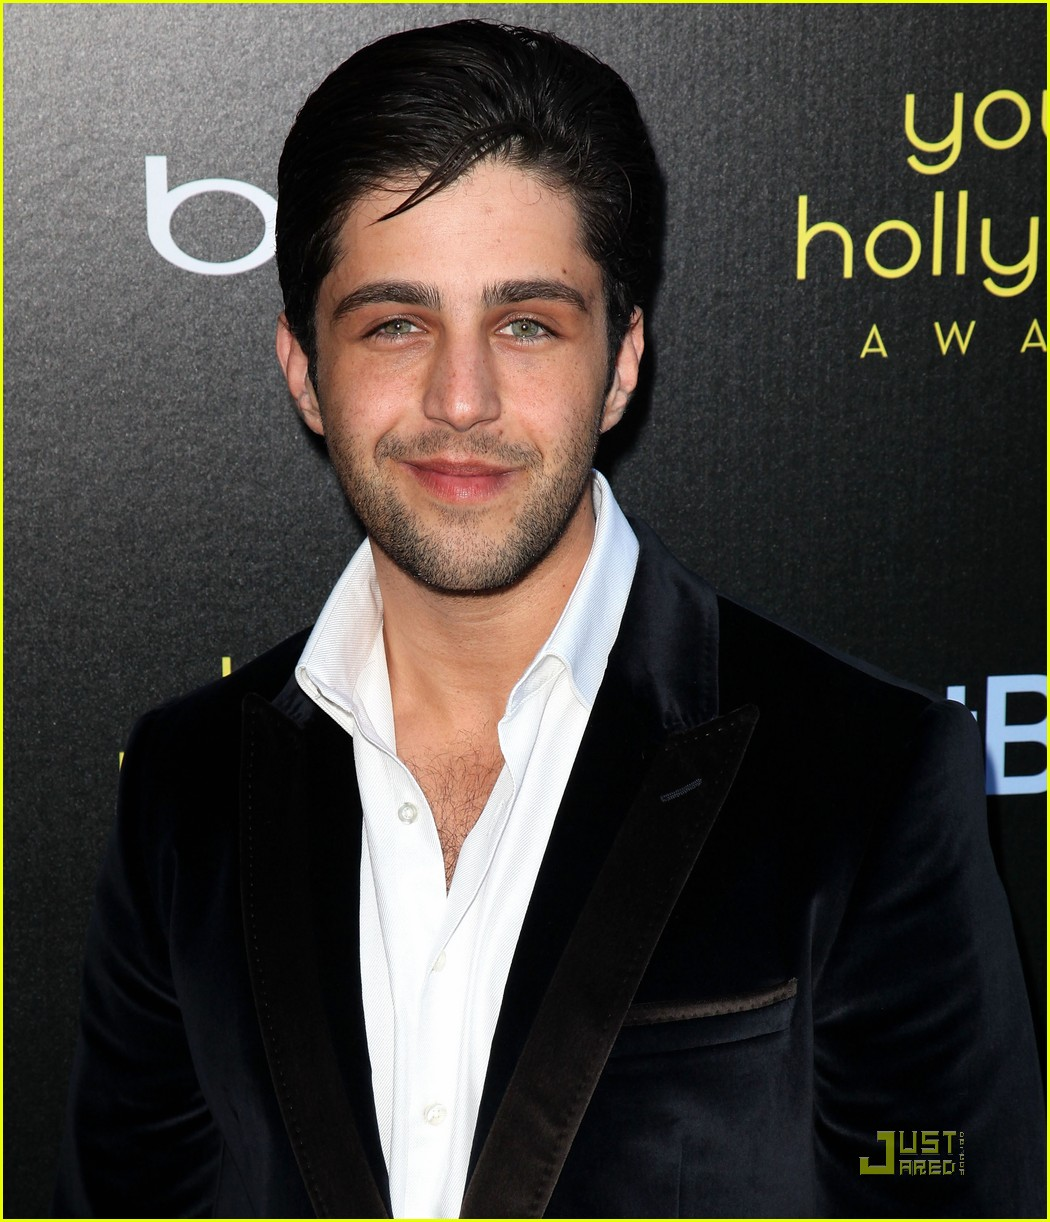 josh peck yh awards 03